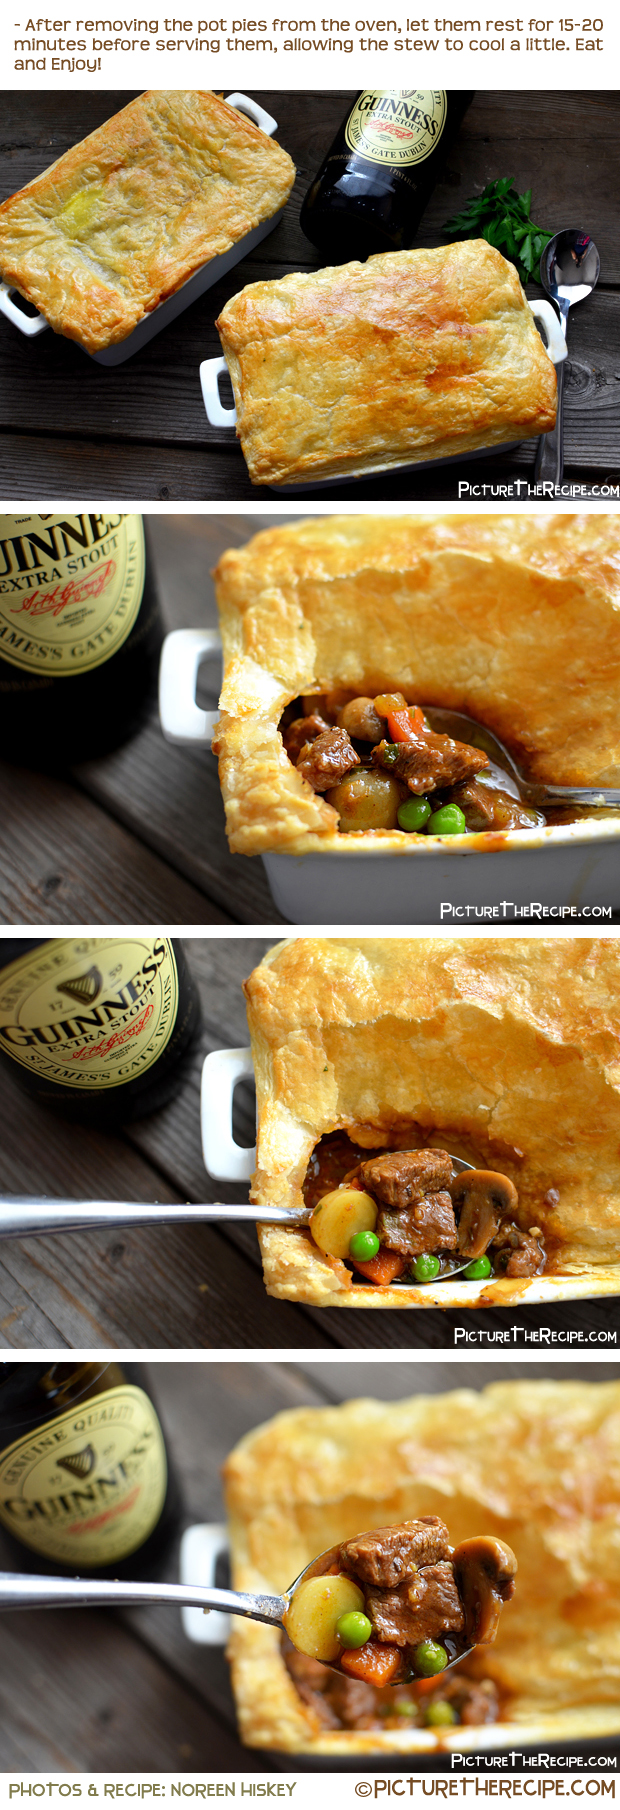 Guinness Beef Pot Pie | Picture the Recipe